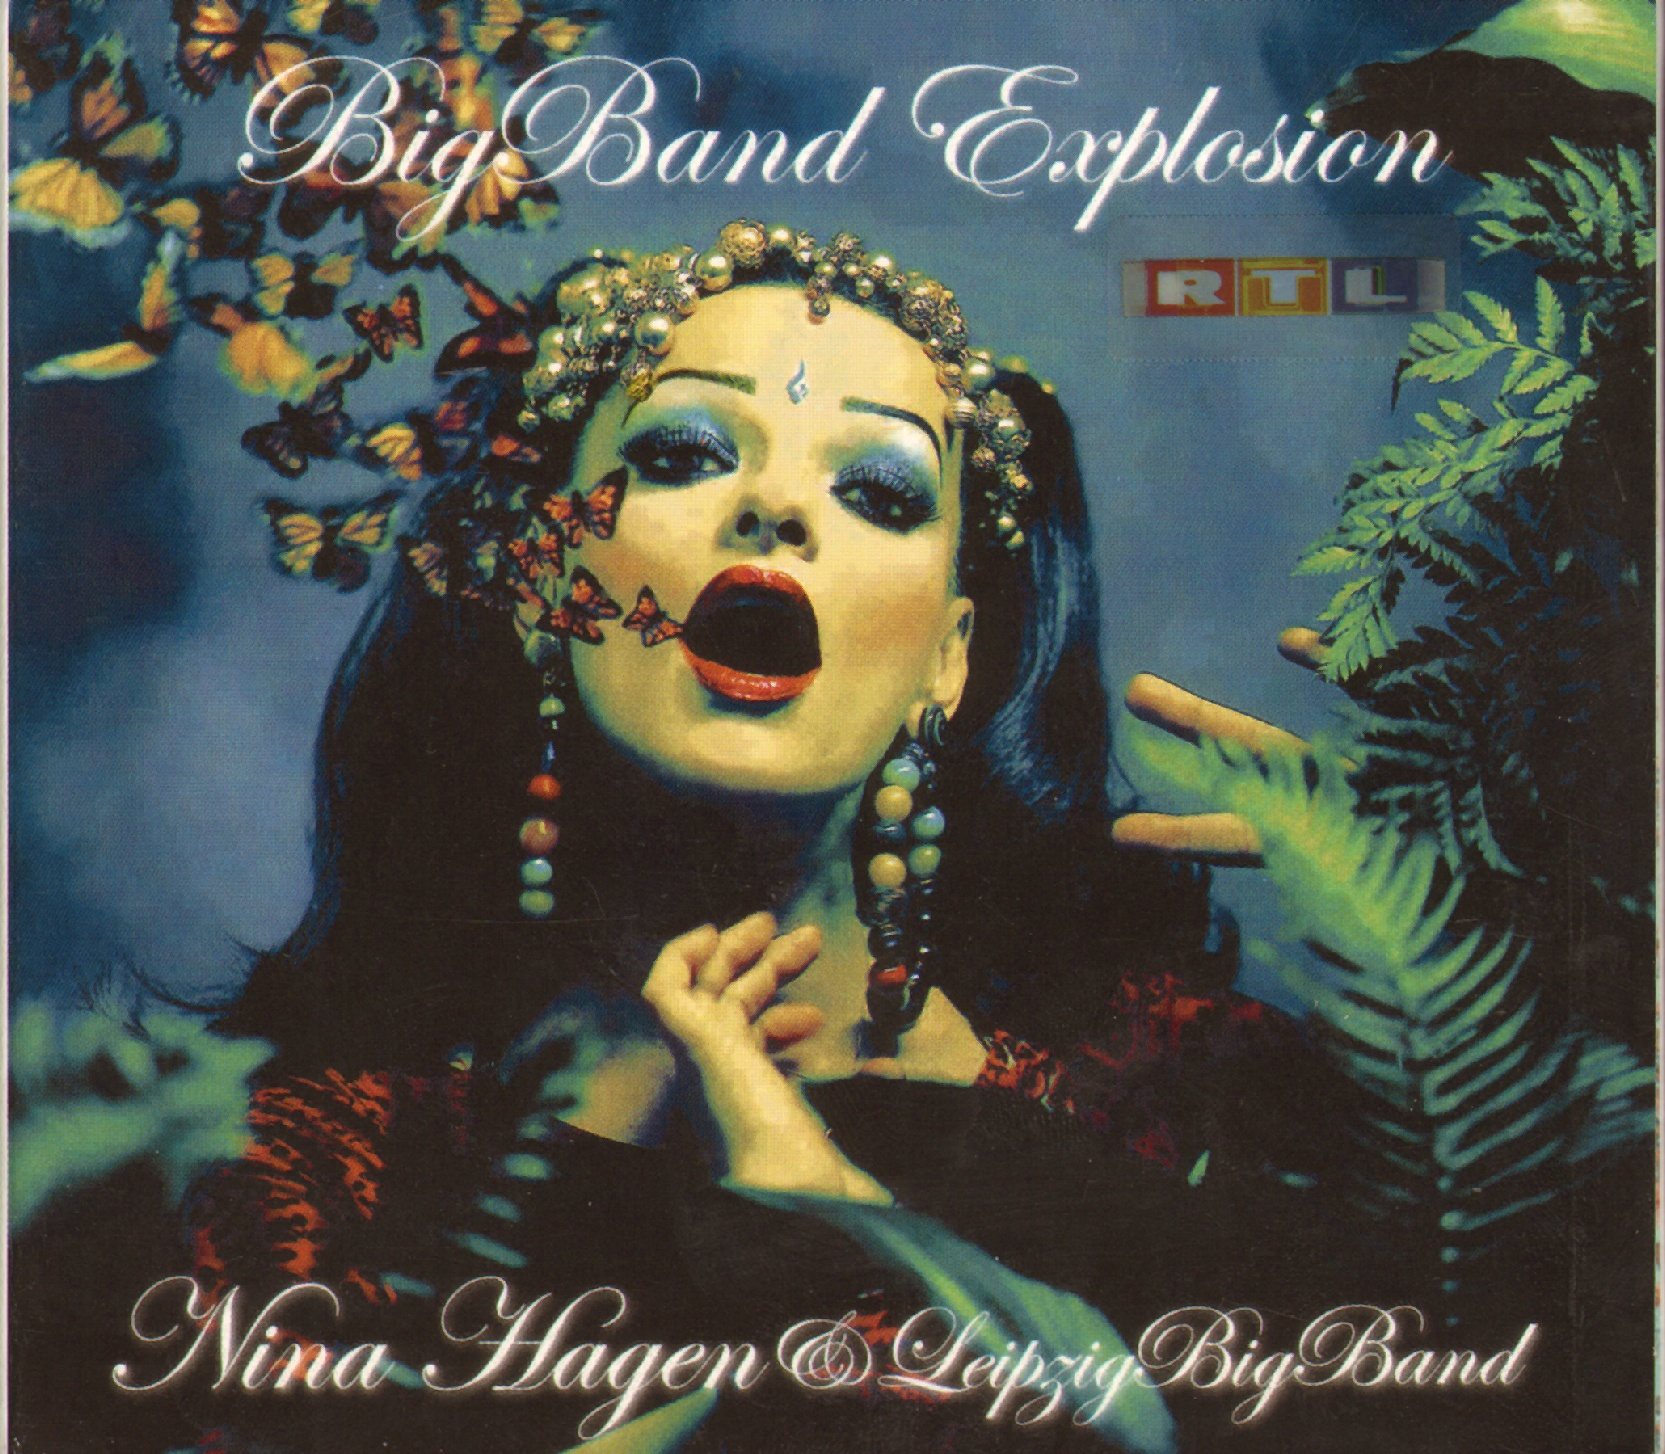 Nina Hagen | Big Band Explosion | The Berliner.com, 2003